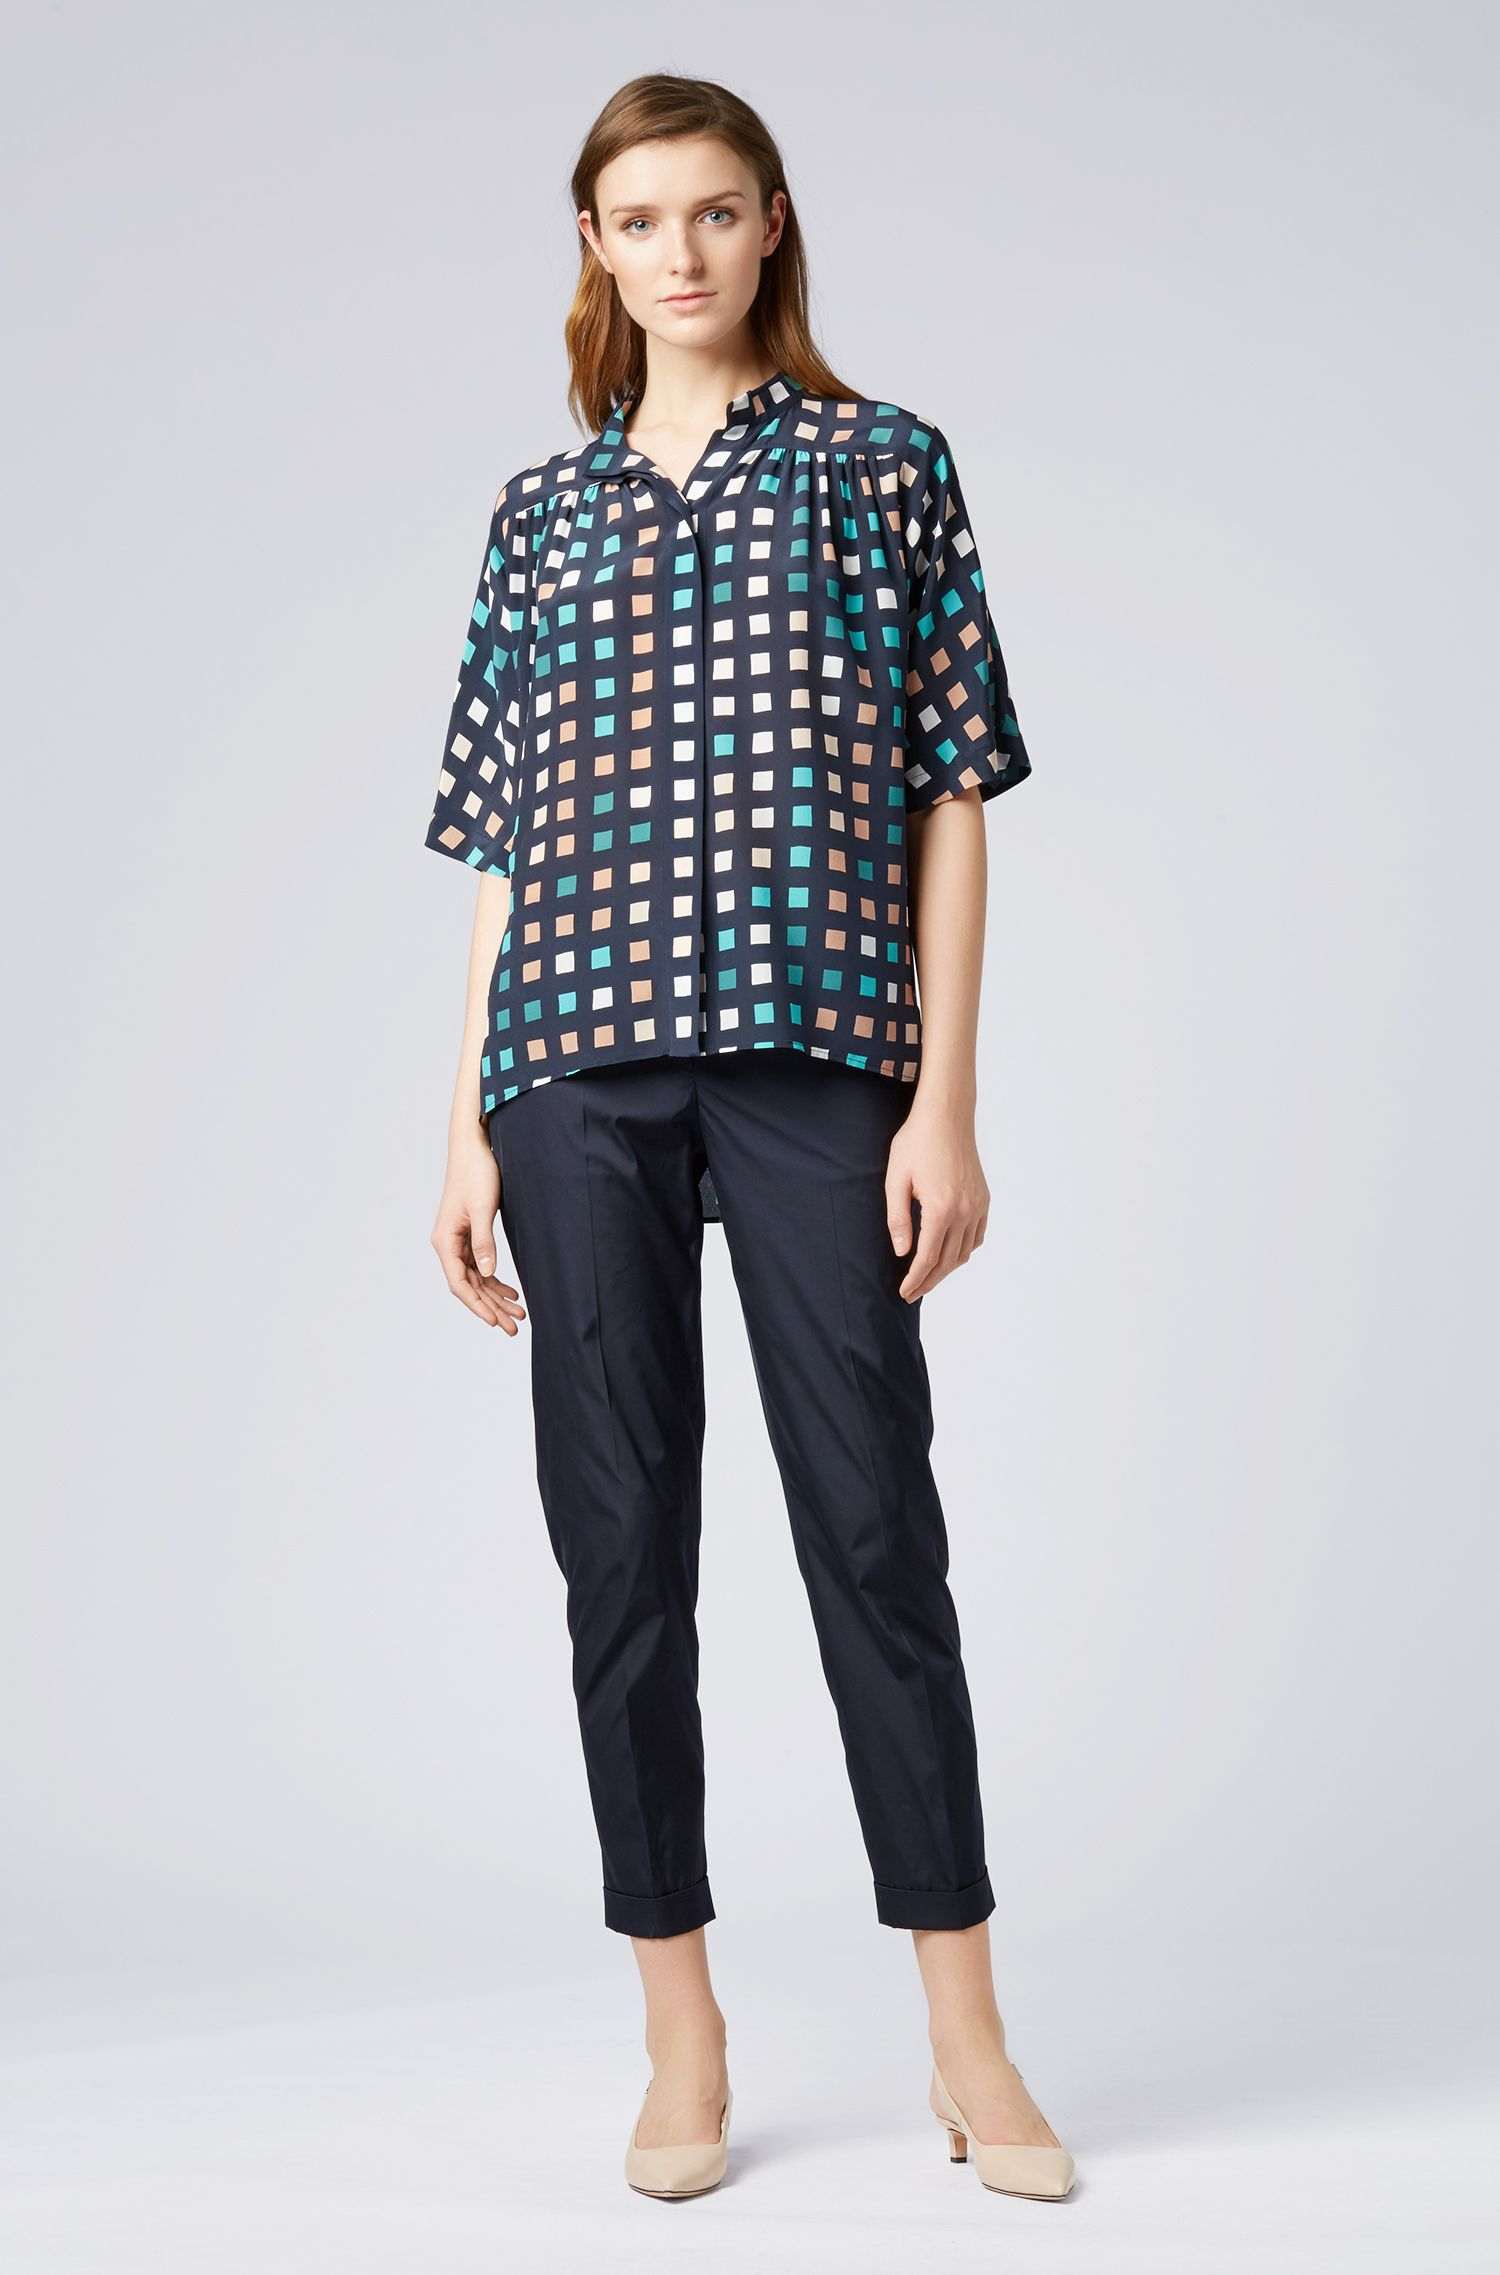 Relaxed-fit silk blouse with exclusive multi-coloured print, Patterned